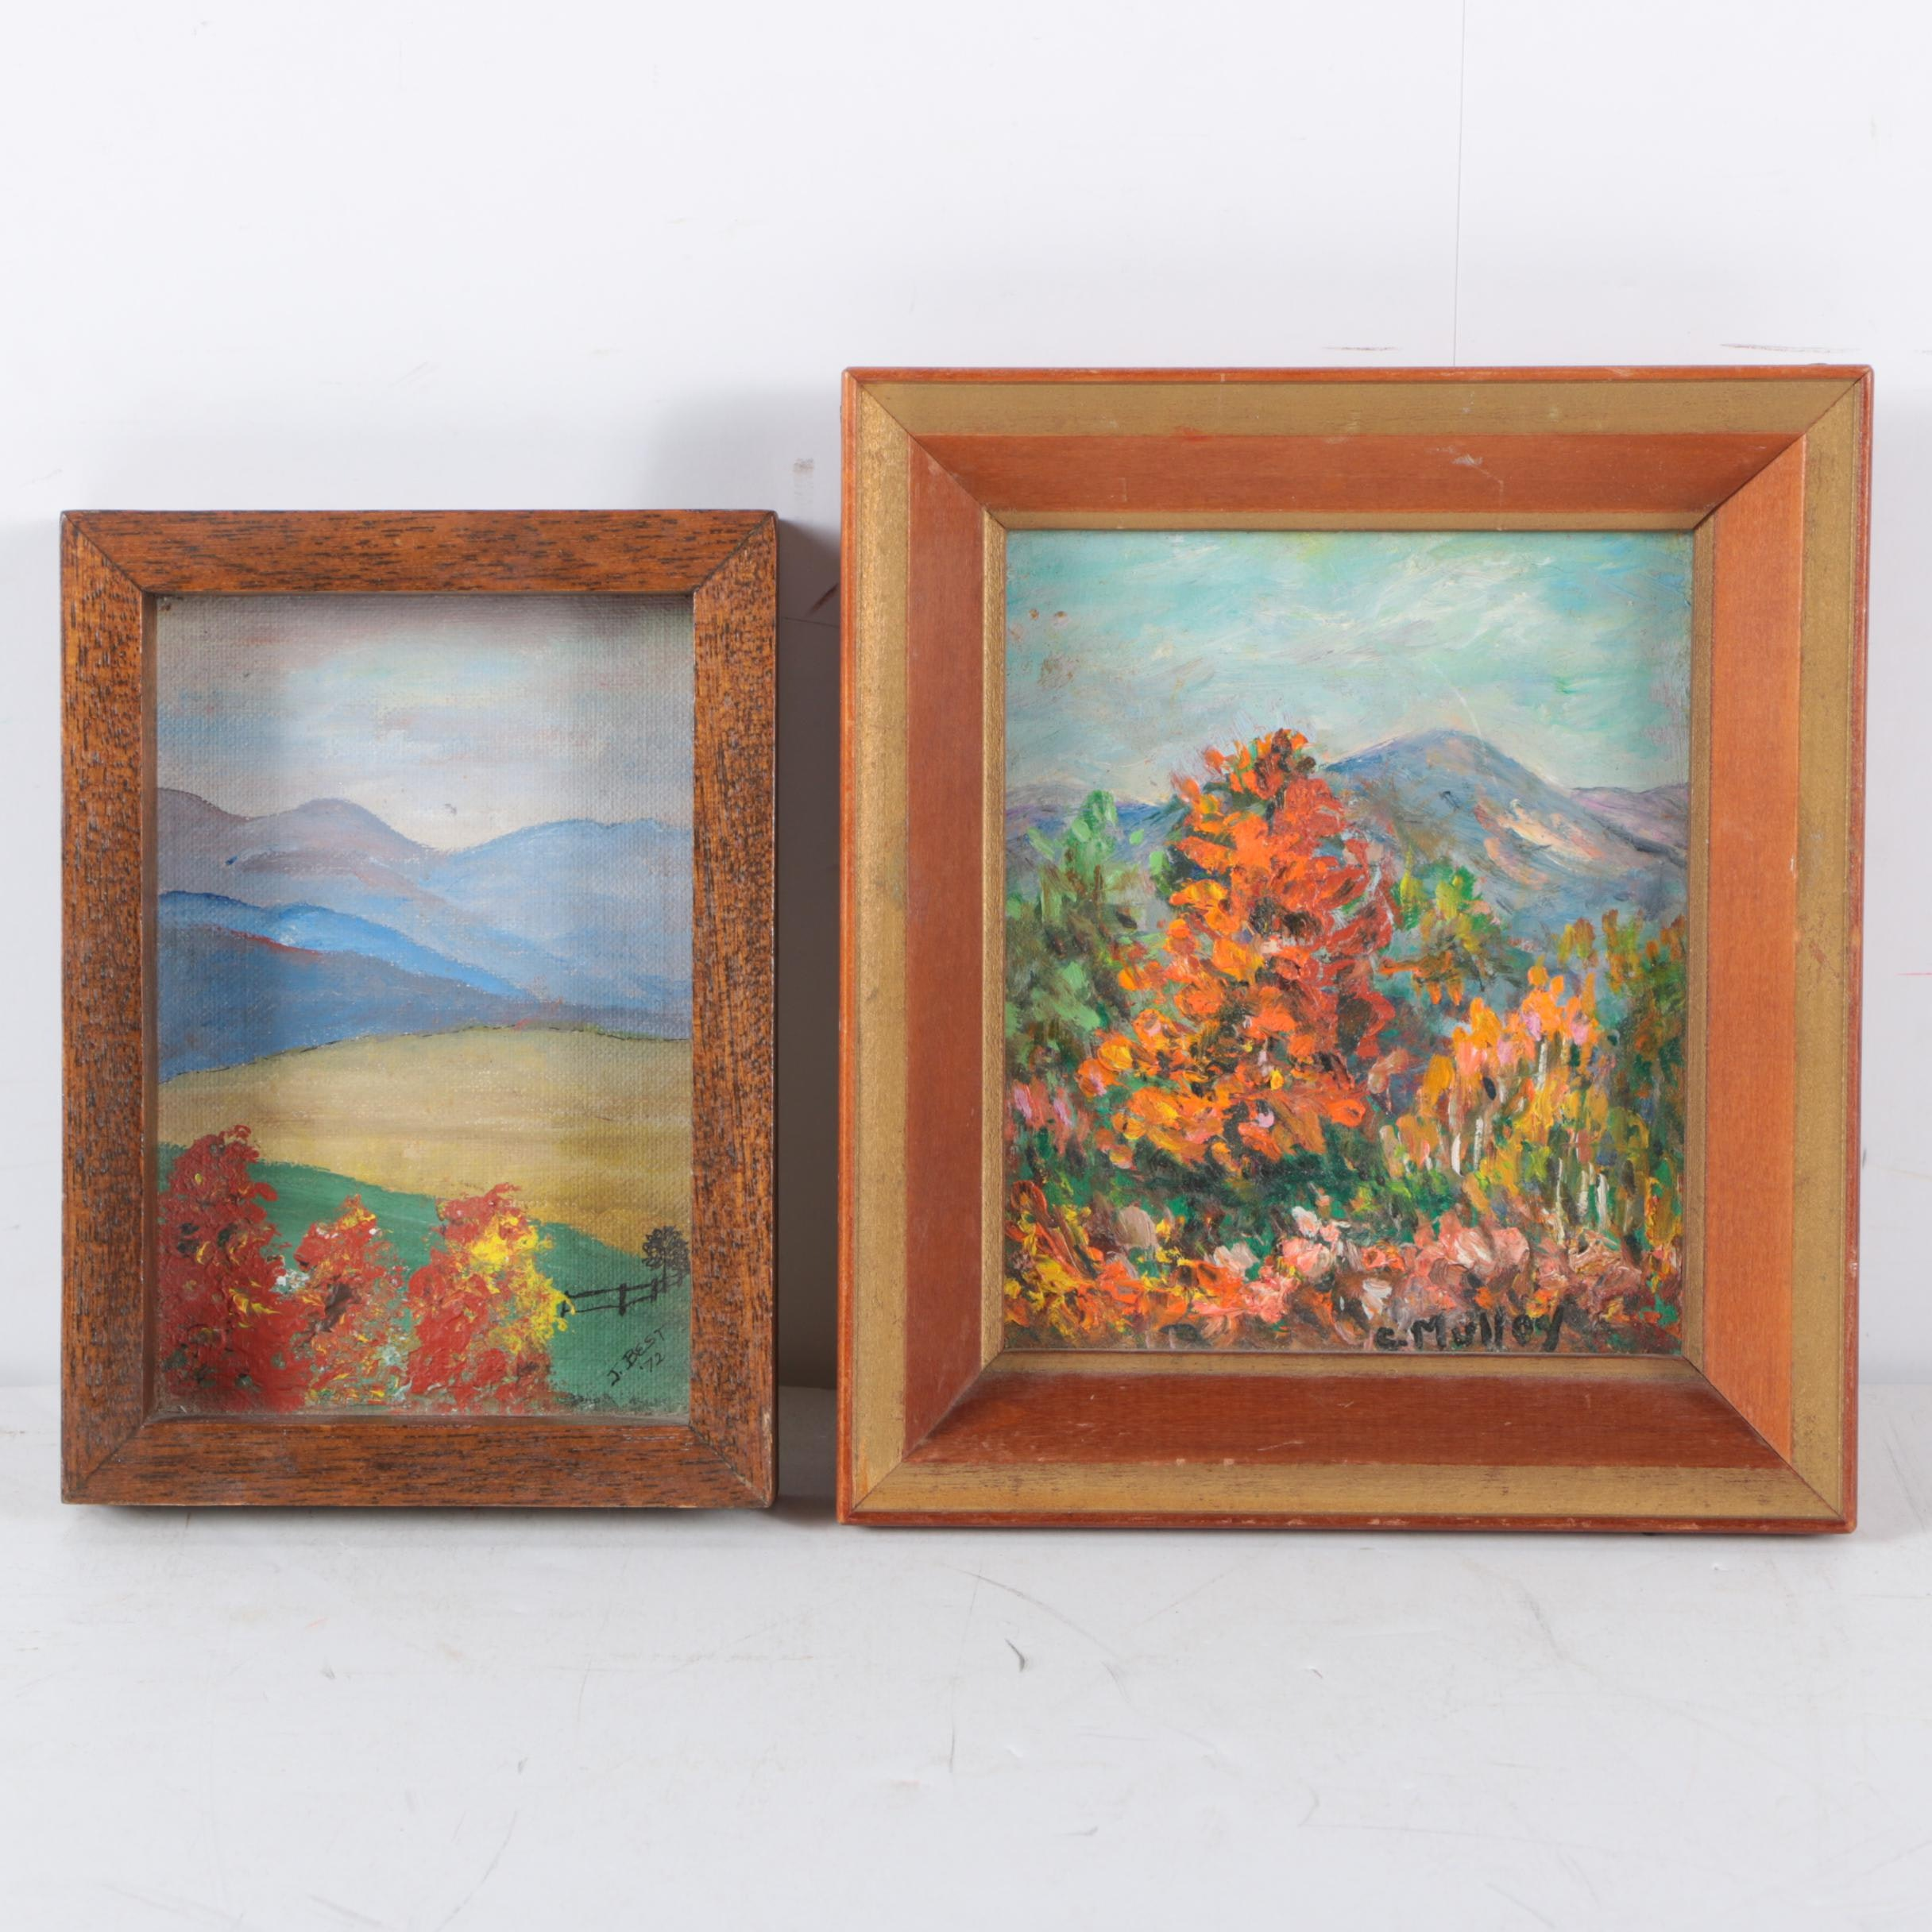 Oil and Acrylic Landscape Paintings on Board